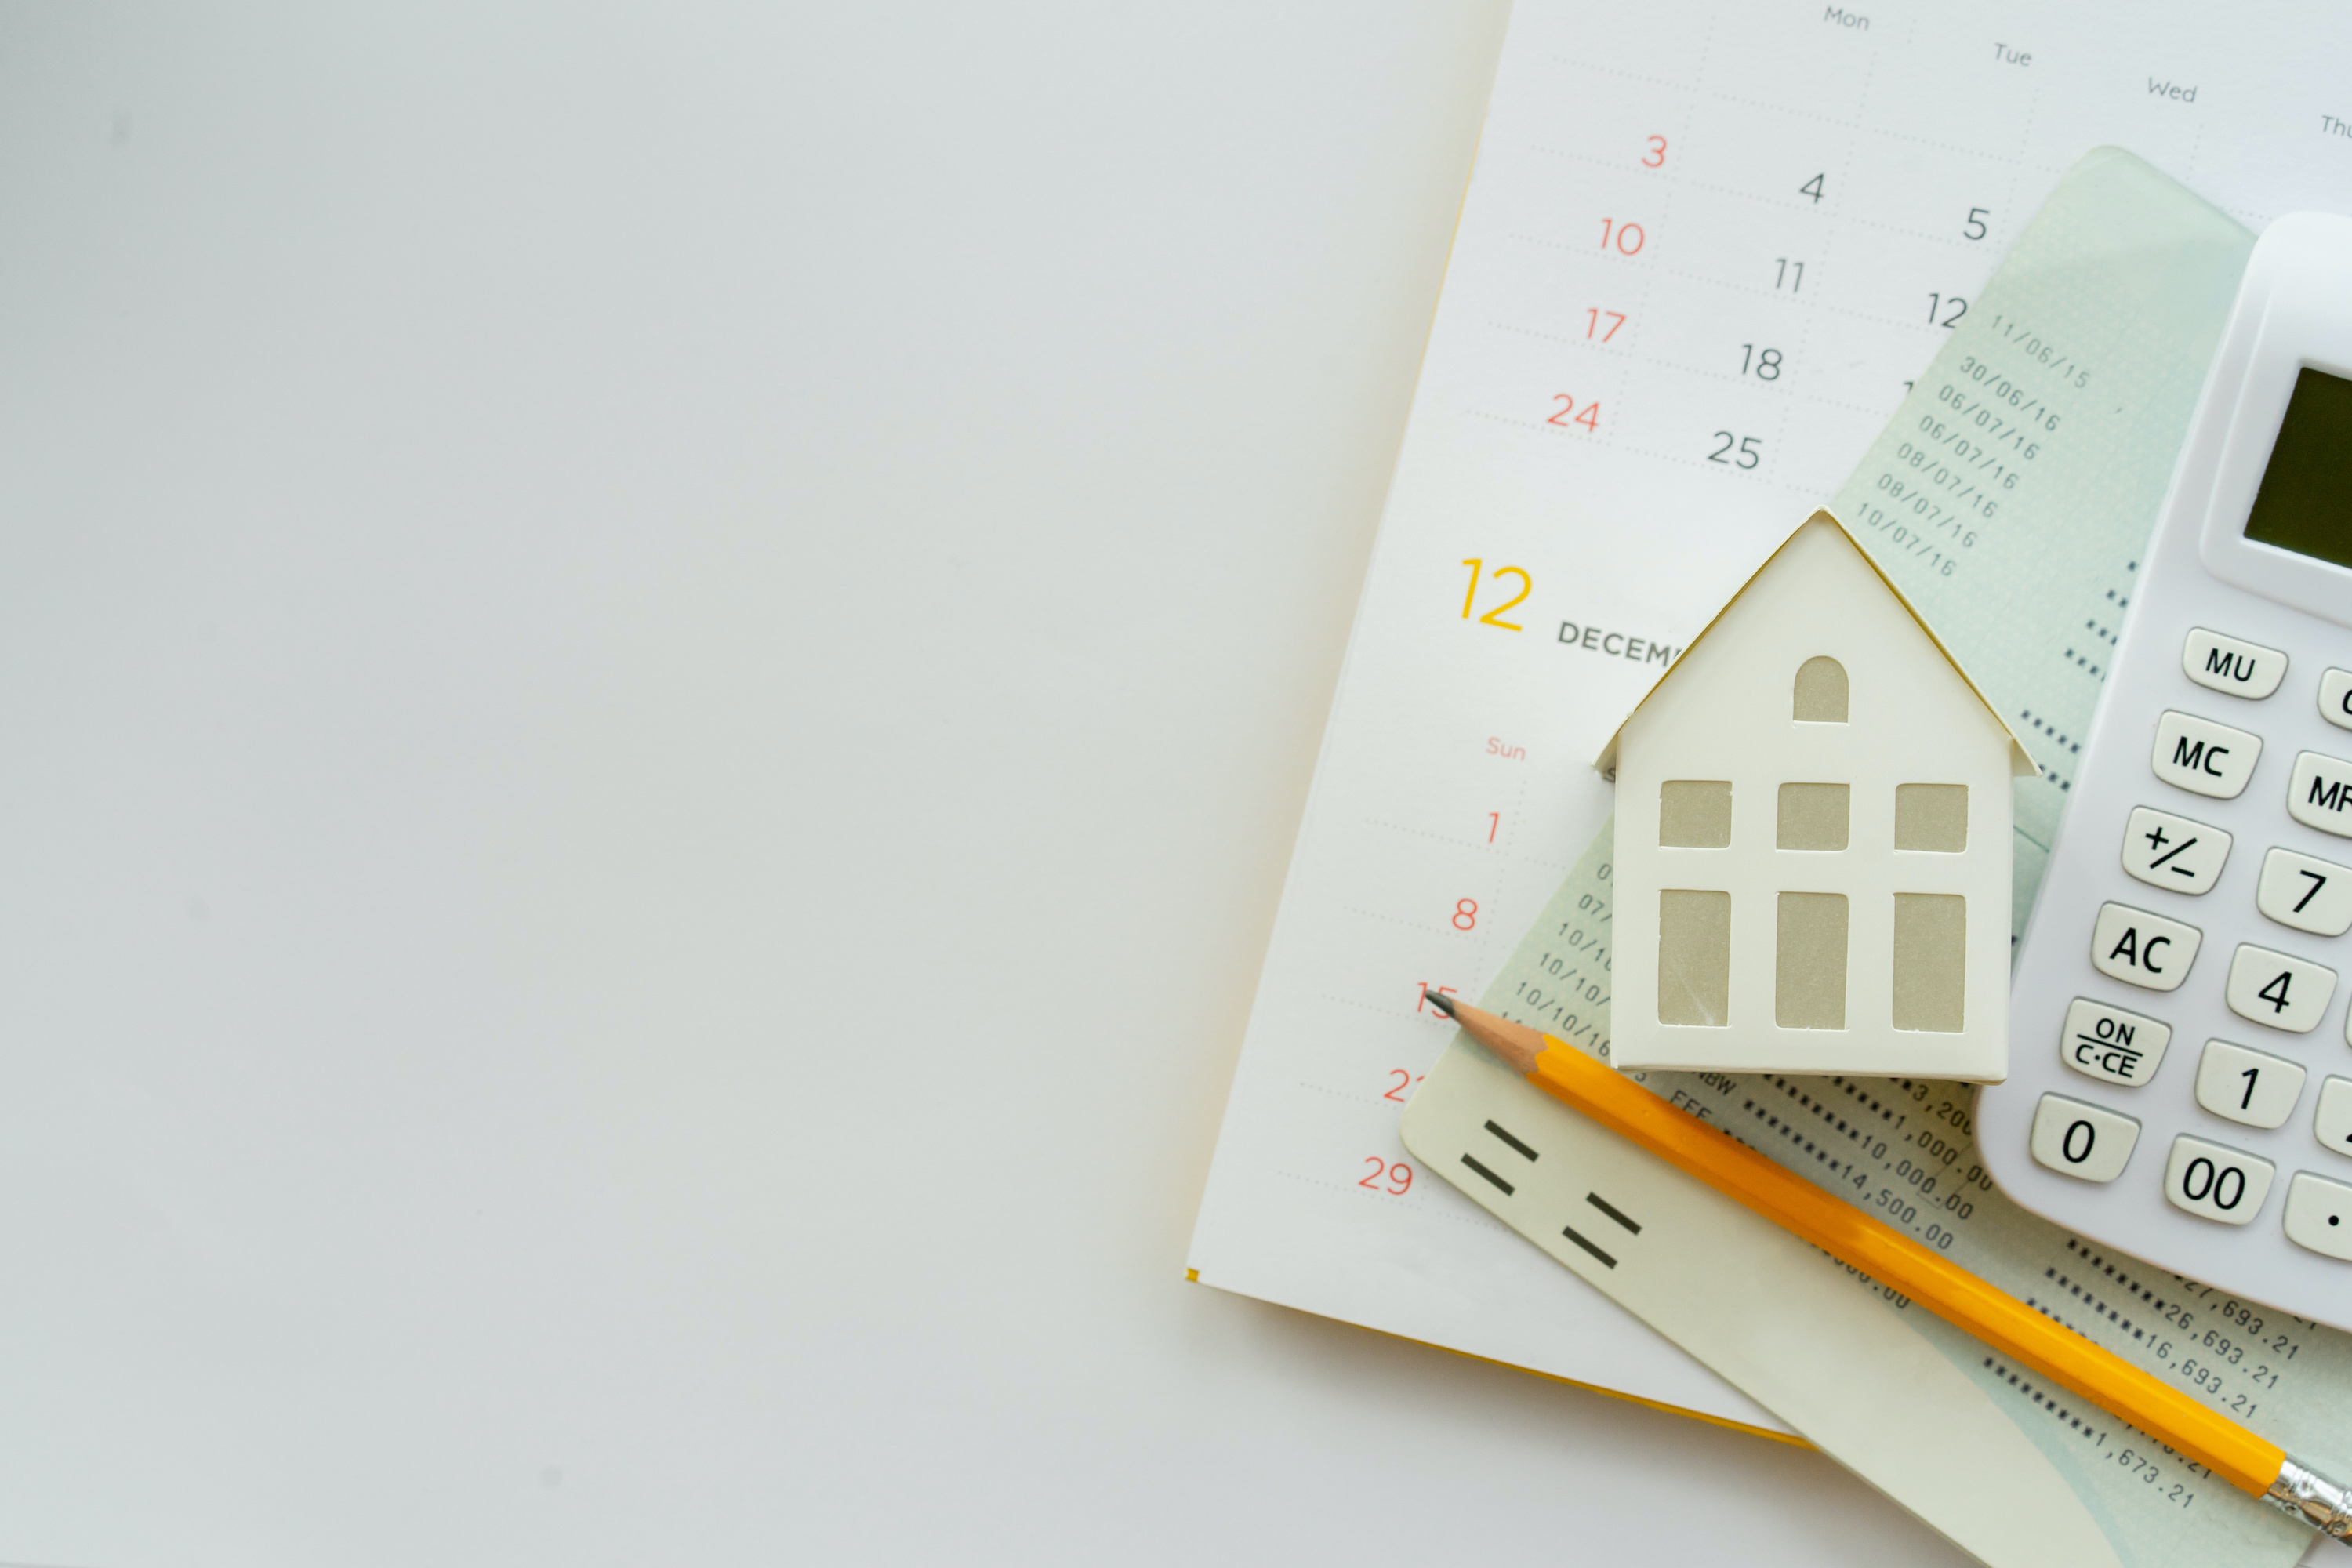 Relief for Commercial Landlords and Tenants - 15th April 2020 Update